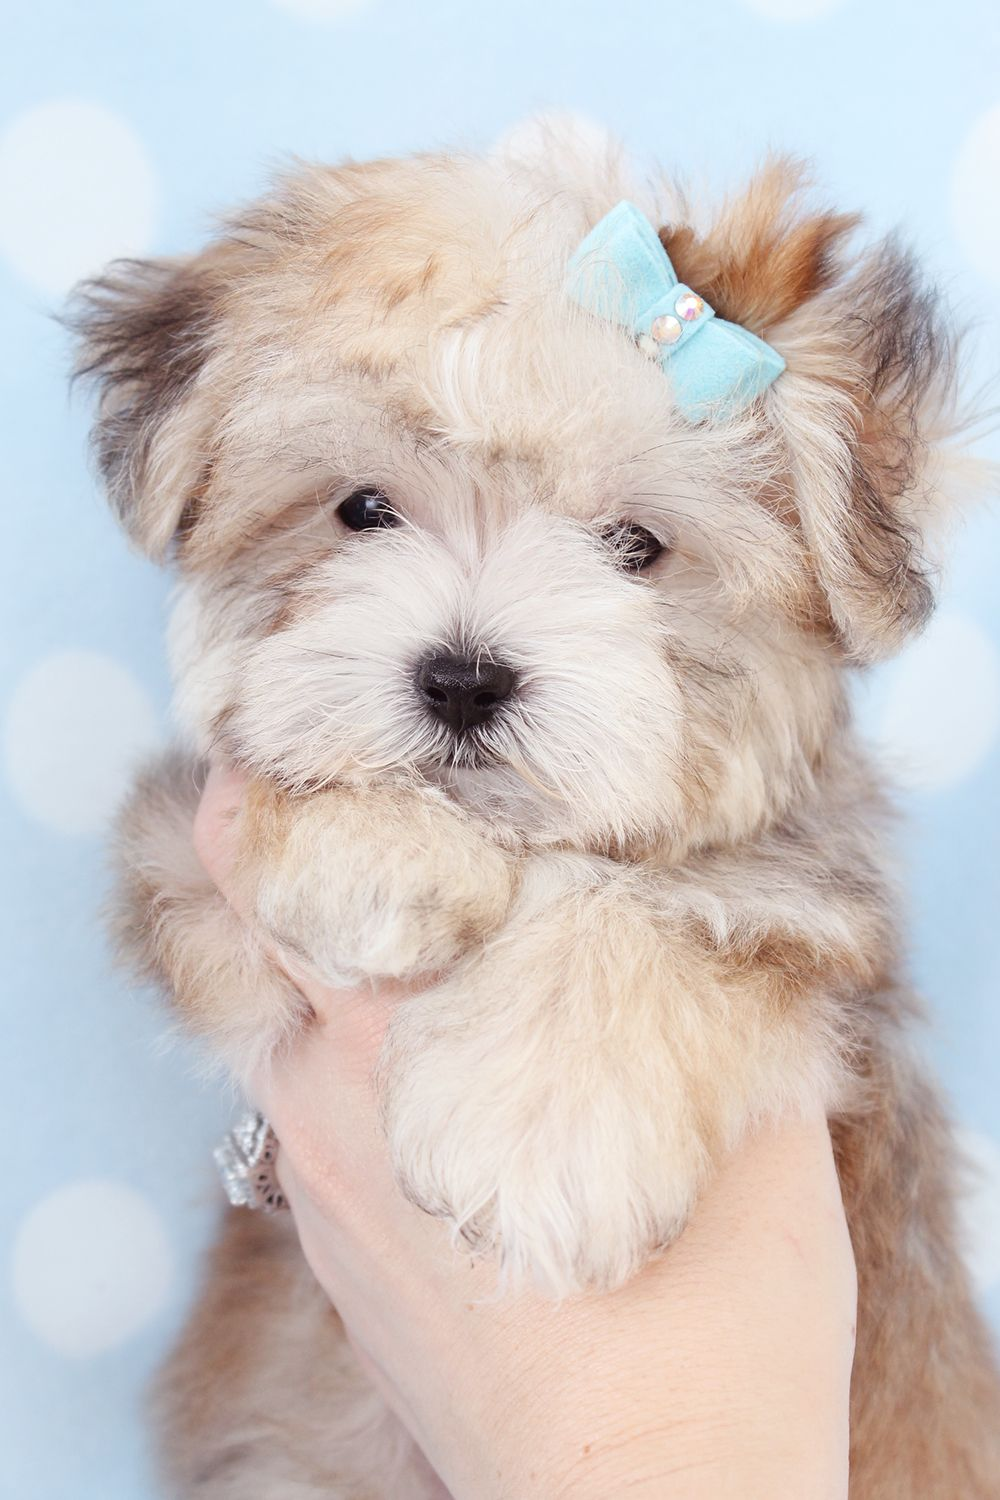 Adorable Morkie Puppies For Sale In South Florida Morkie Puppies